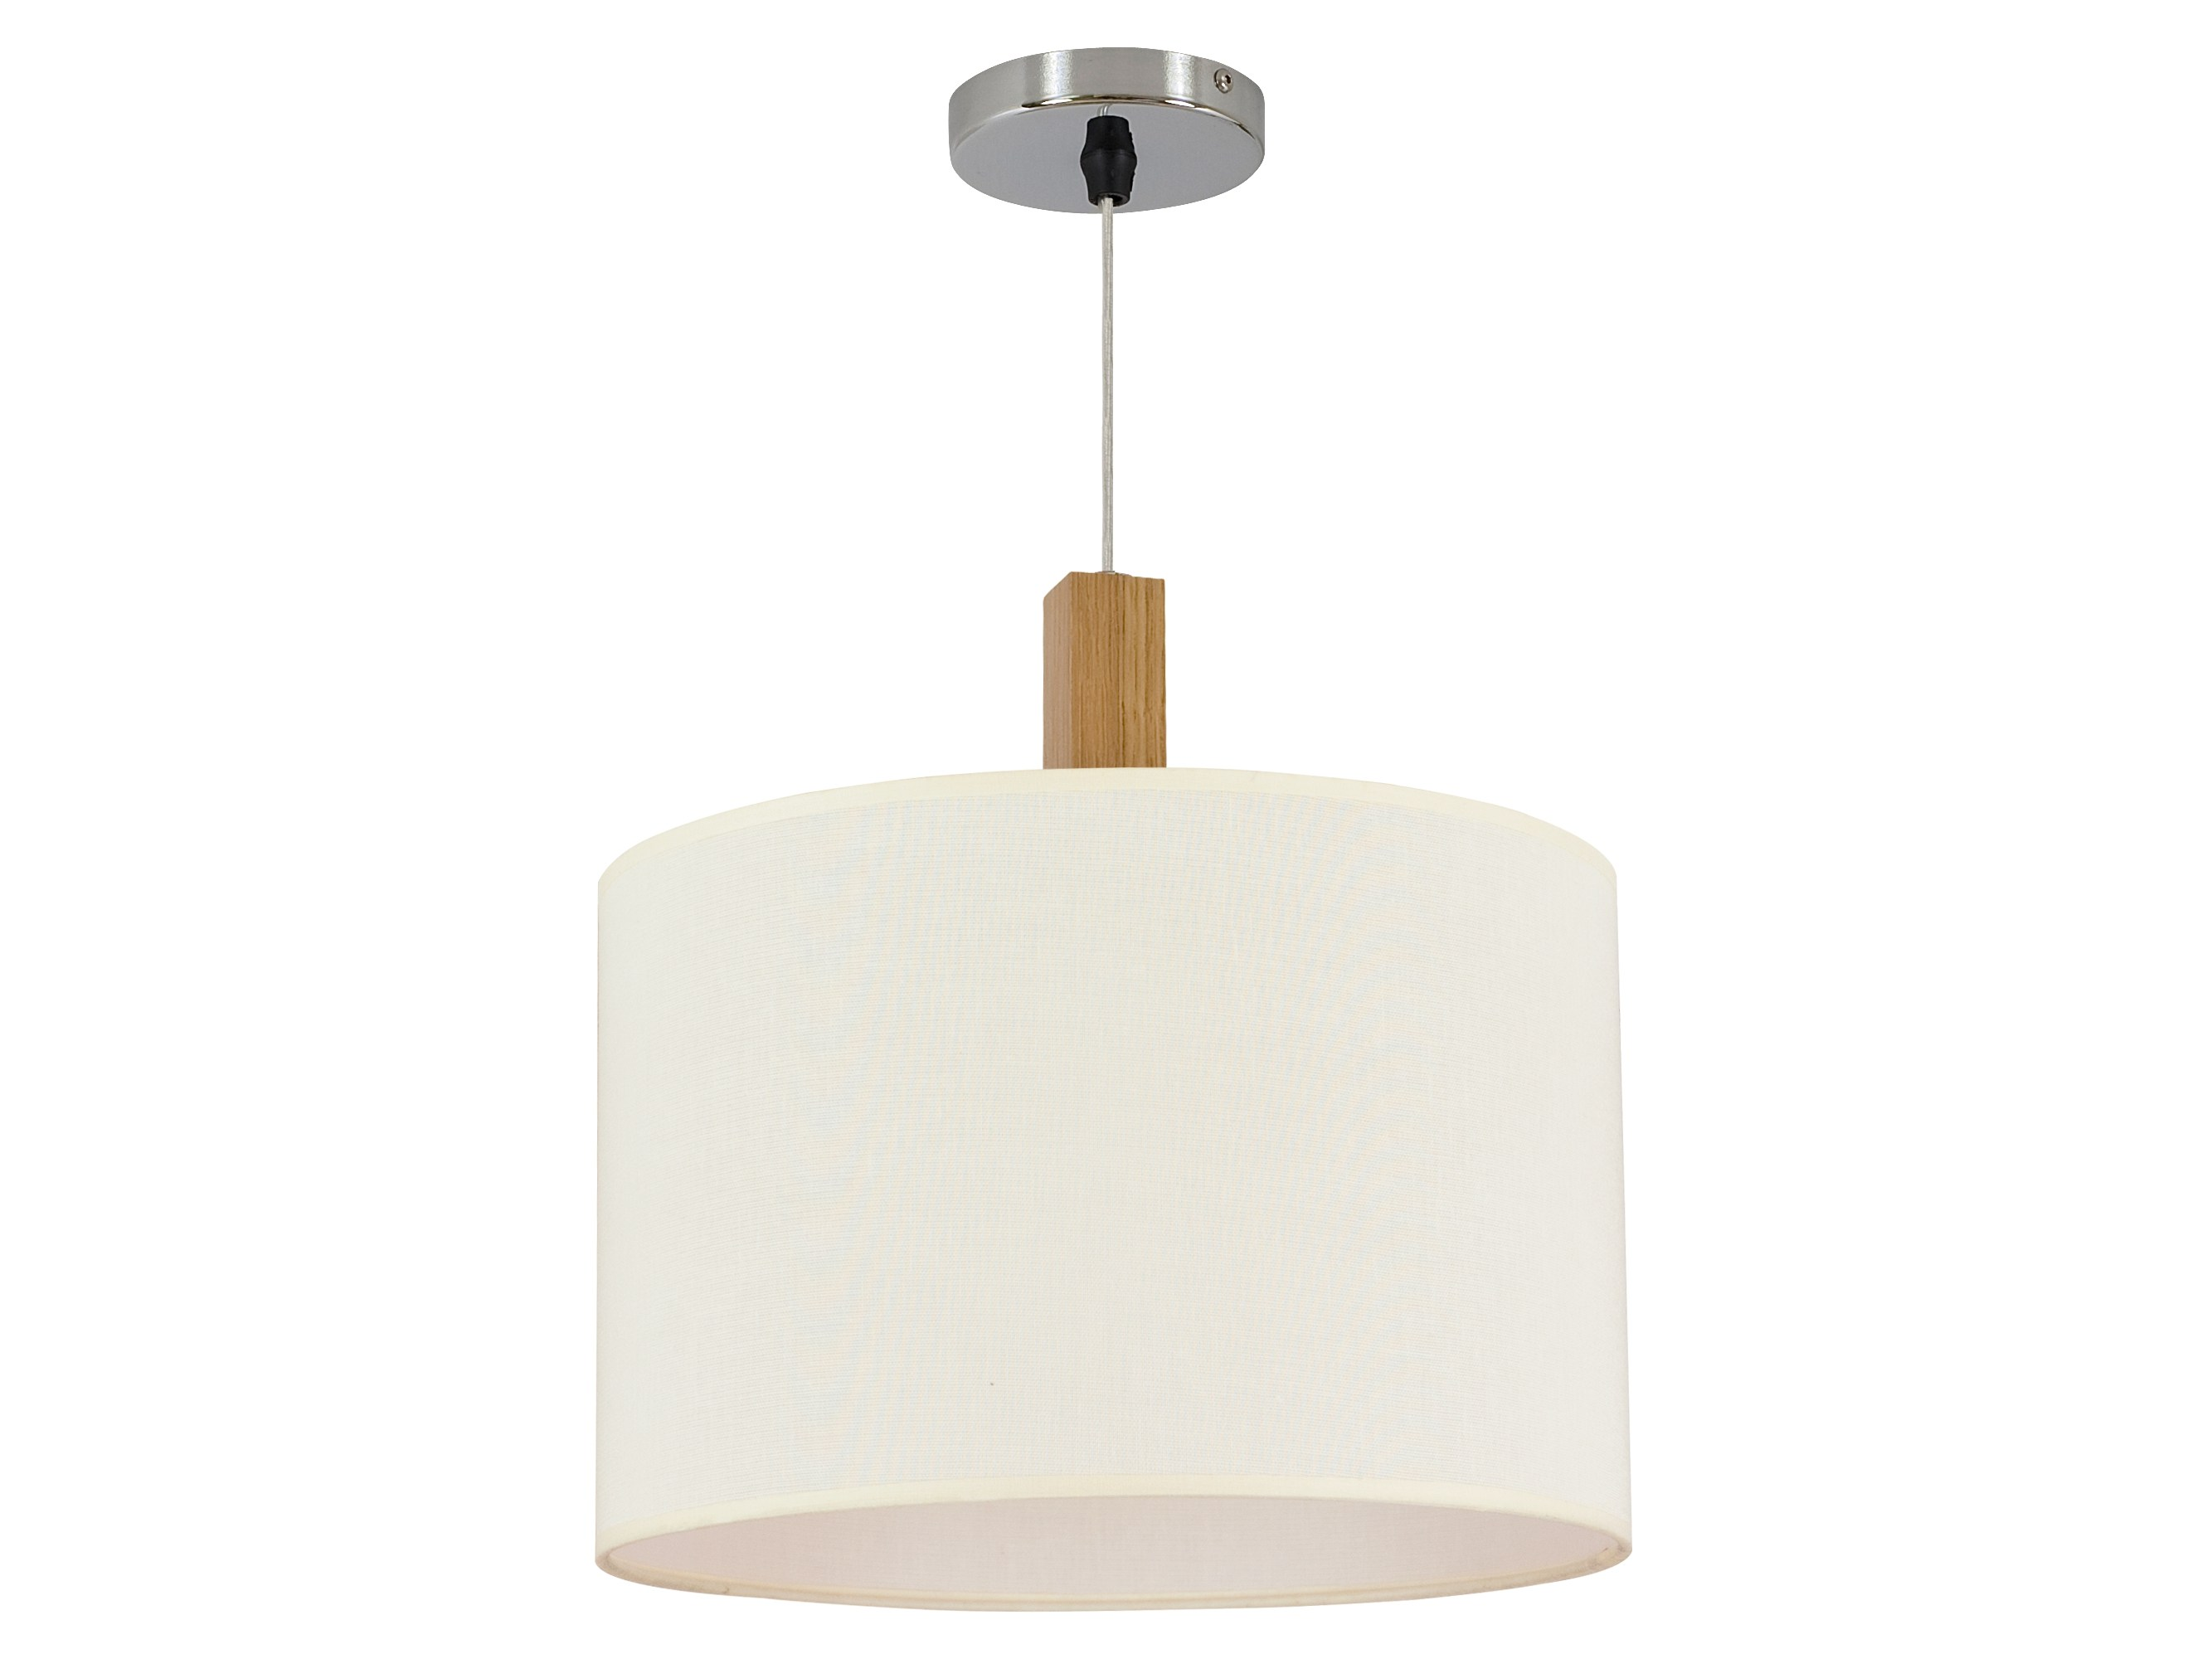 Lighting brossier saderne archiproducts